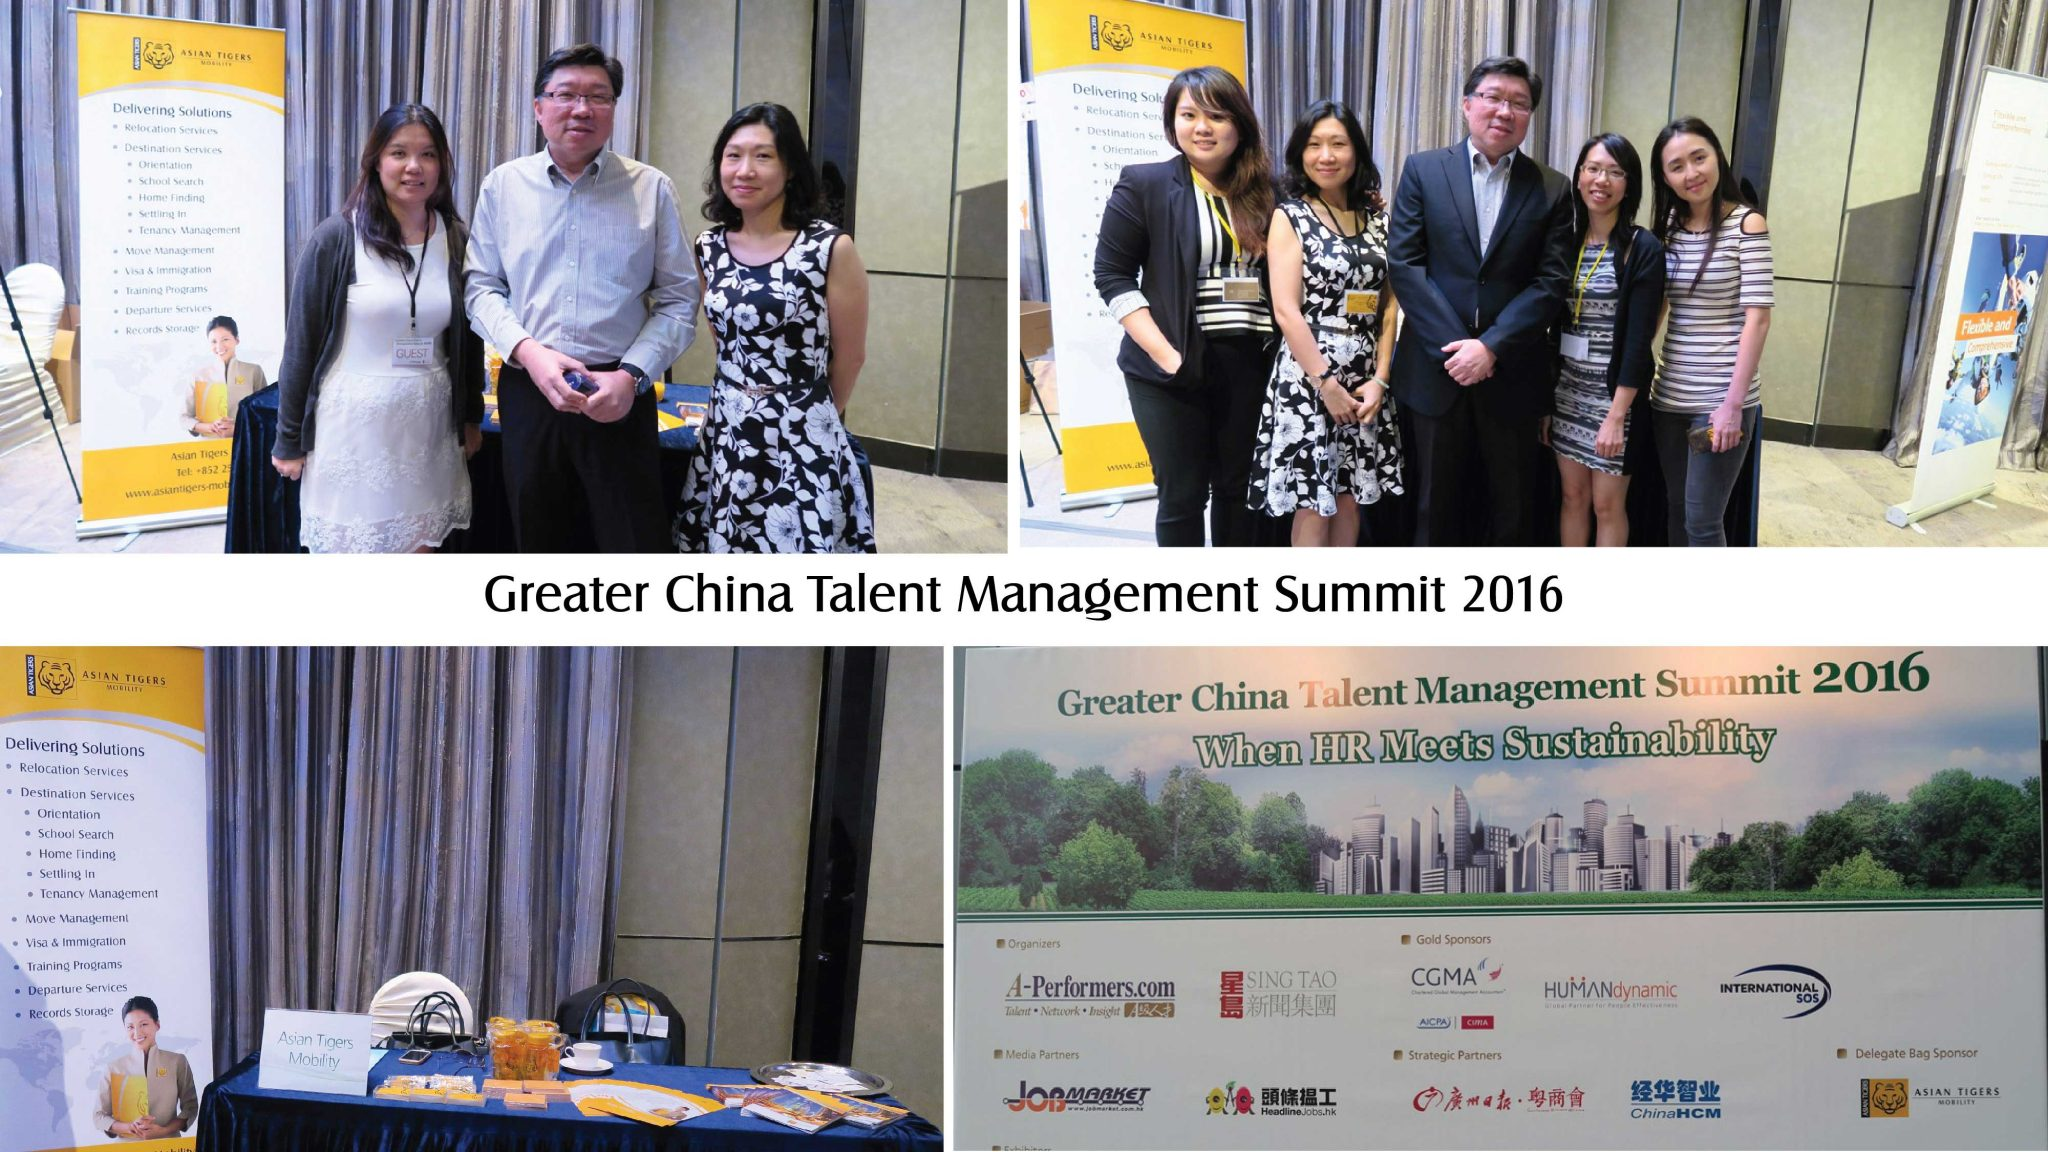 Greater China Talent Management Summit 2016